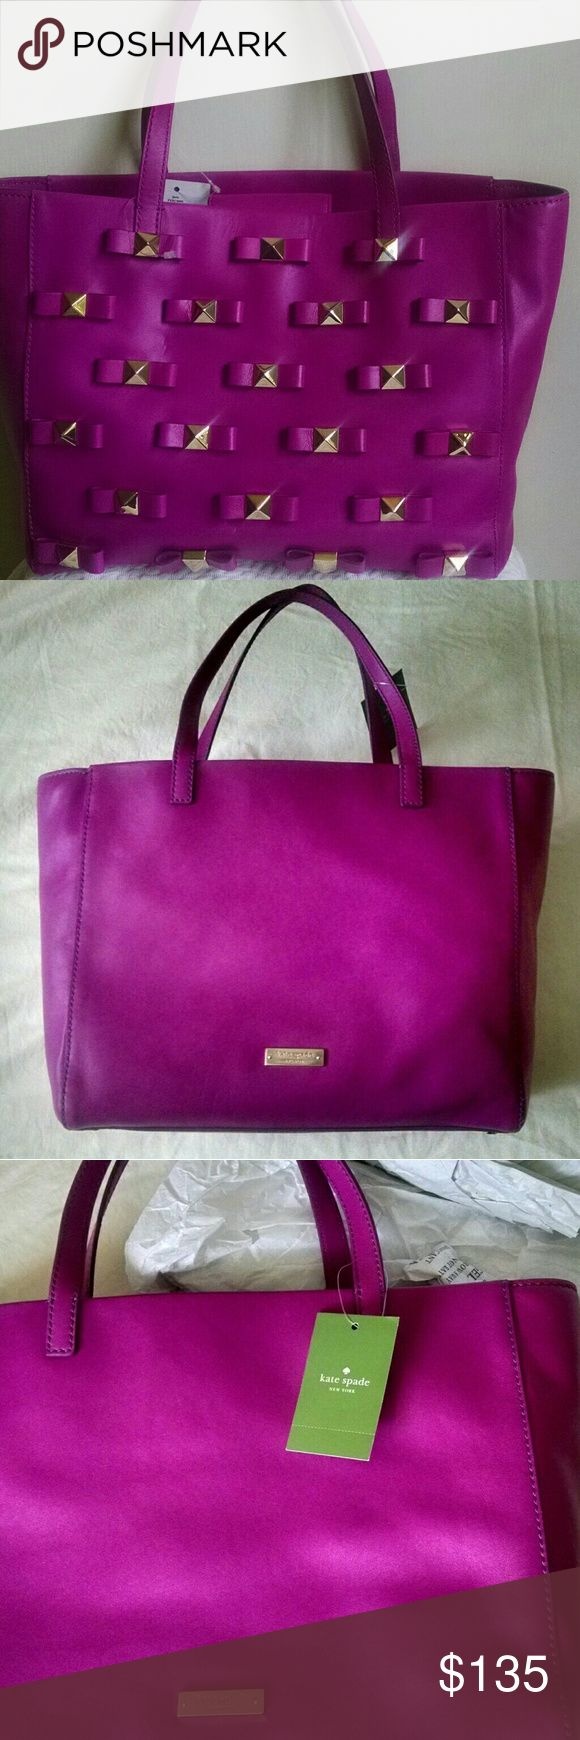 """NWT Kate Spate Janis tote bow... Its a steal!! NWT BUT Has small 1/2"""" indentation on front, see pics. Otherwise IMMACULATE!! Price reflects this FLAW. Tag still attached. Retailed for 458.00 kate spade Bags Totes"""